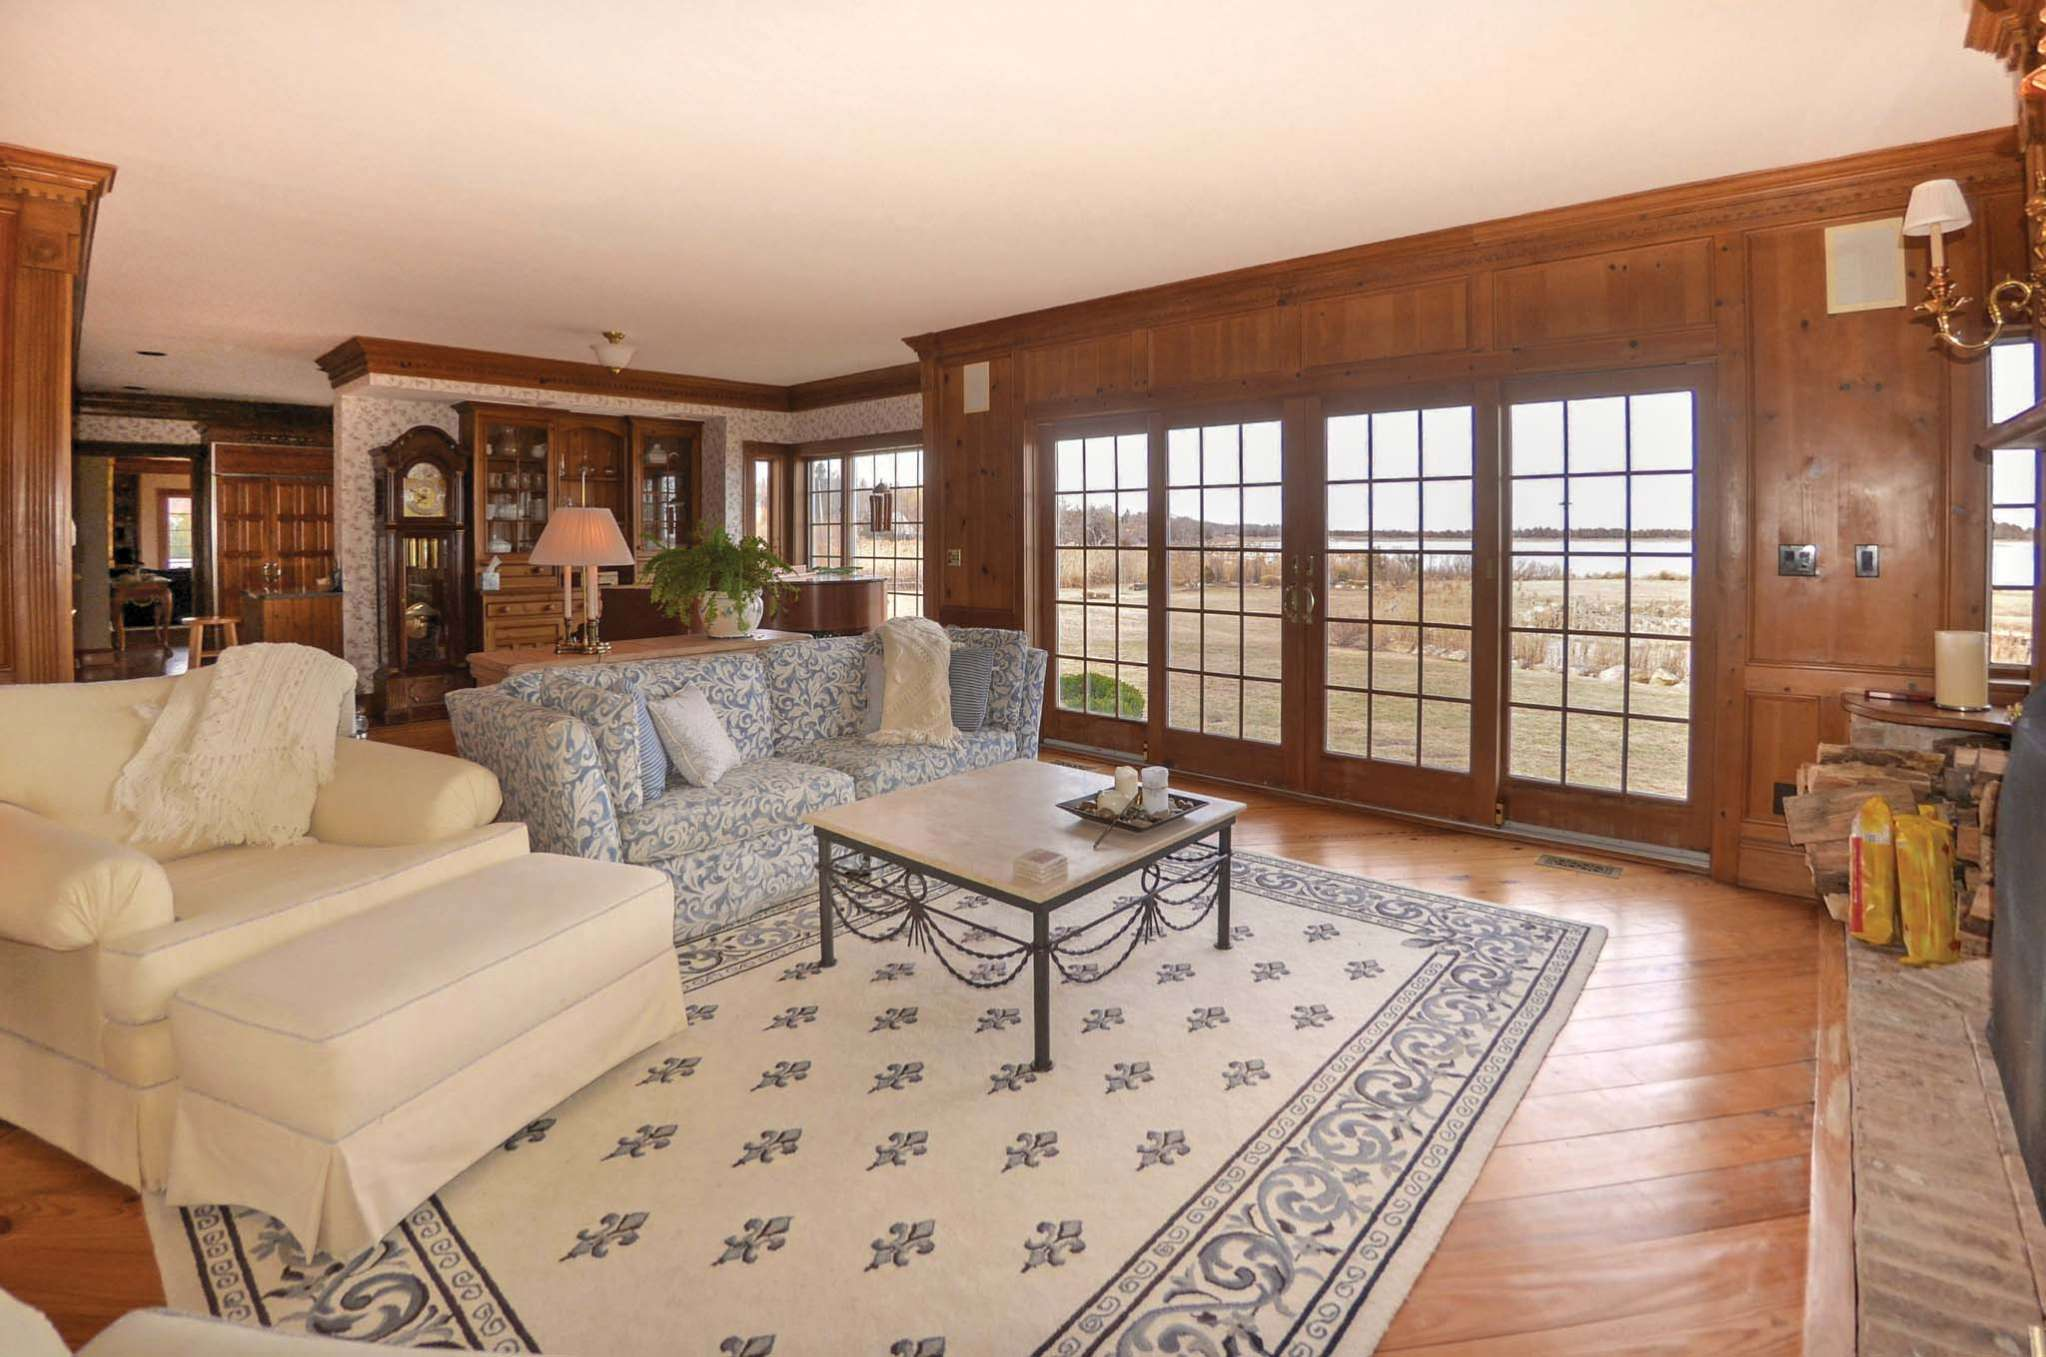 Additional photo for property listing at Shelter Island Harbor Front Estate With Boat Basin And Dock  Shelter Island, Nueva York